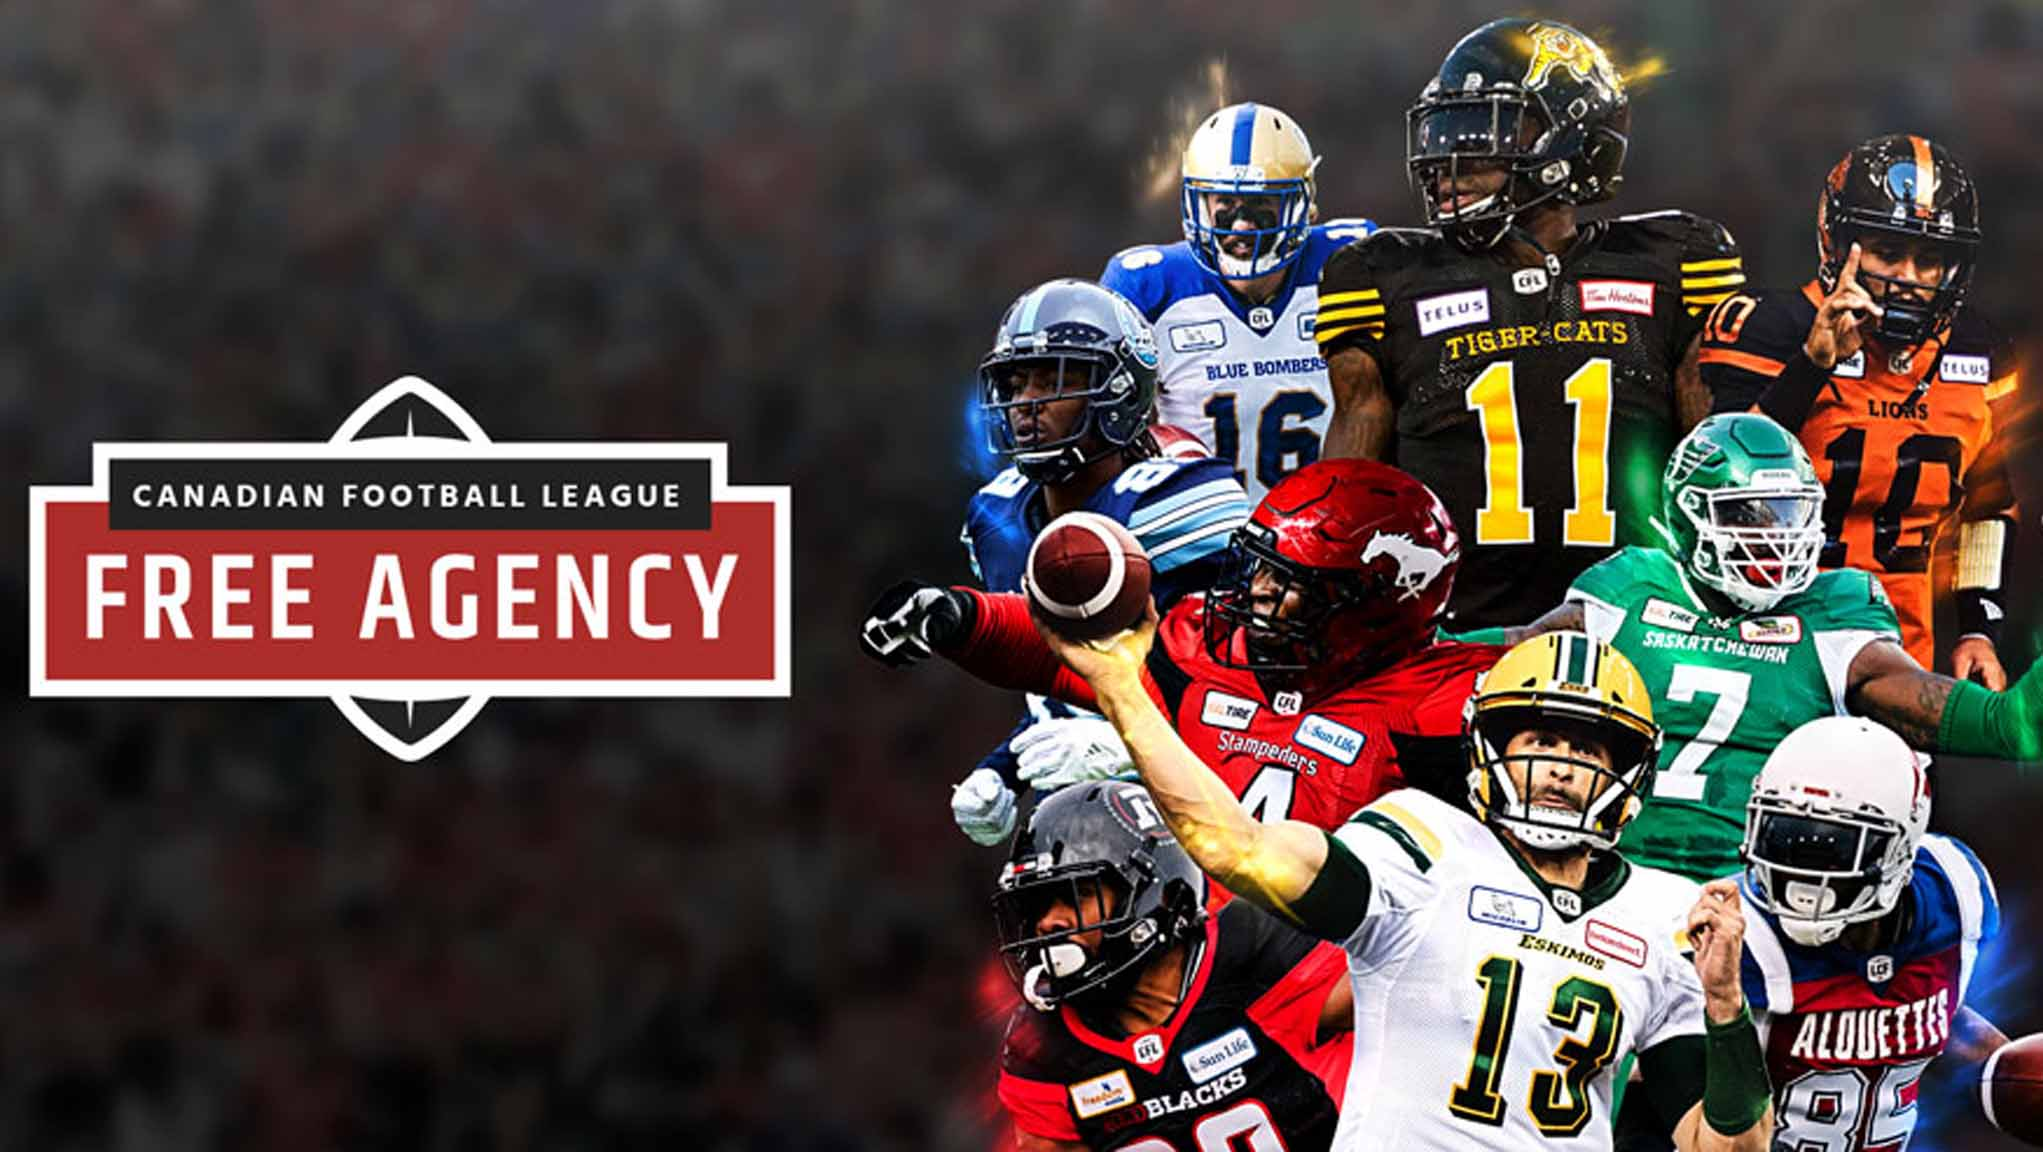 Seismic shifts: Free agency day 1 changes the CFL landscape